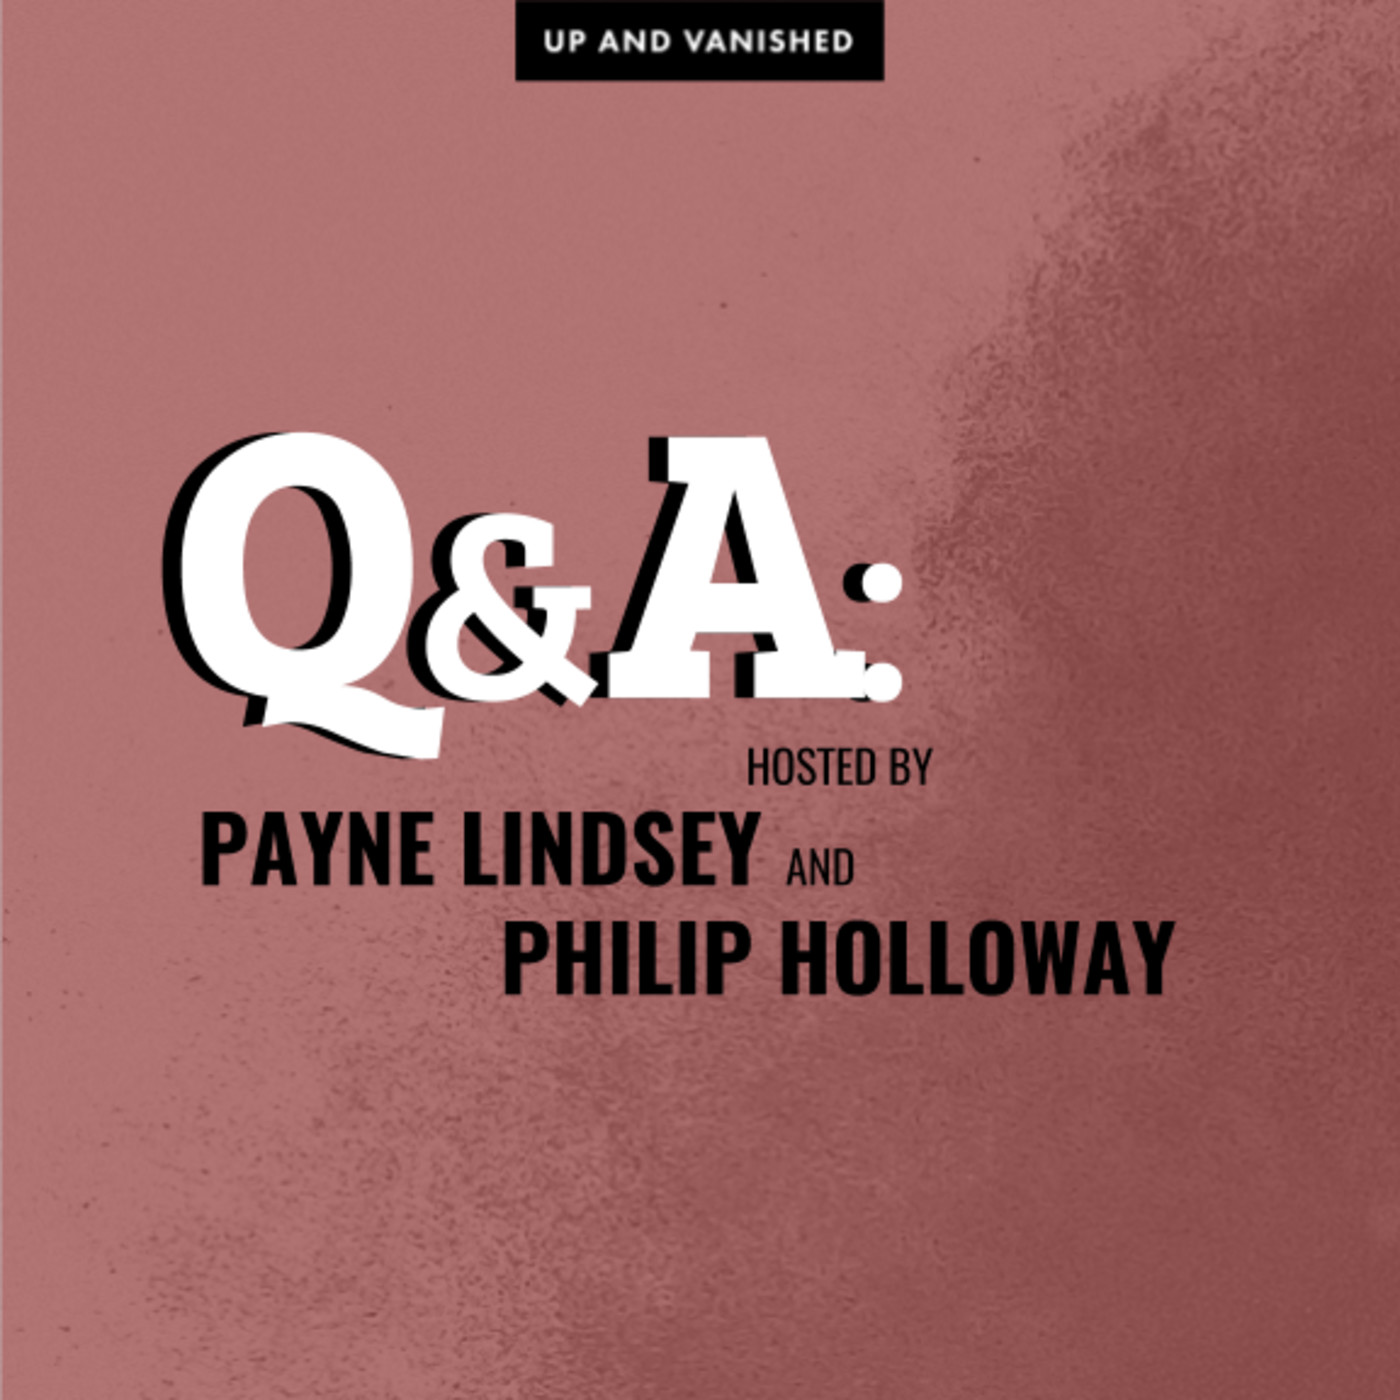 S1E : Q&A with Philip Holloway 06.23.17